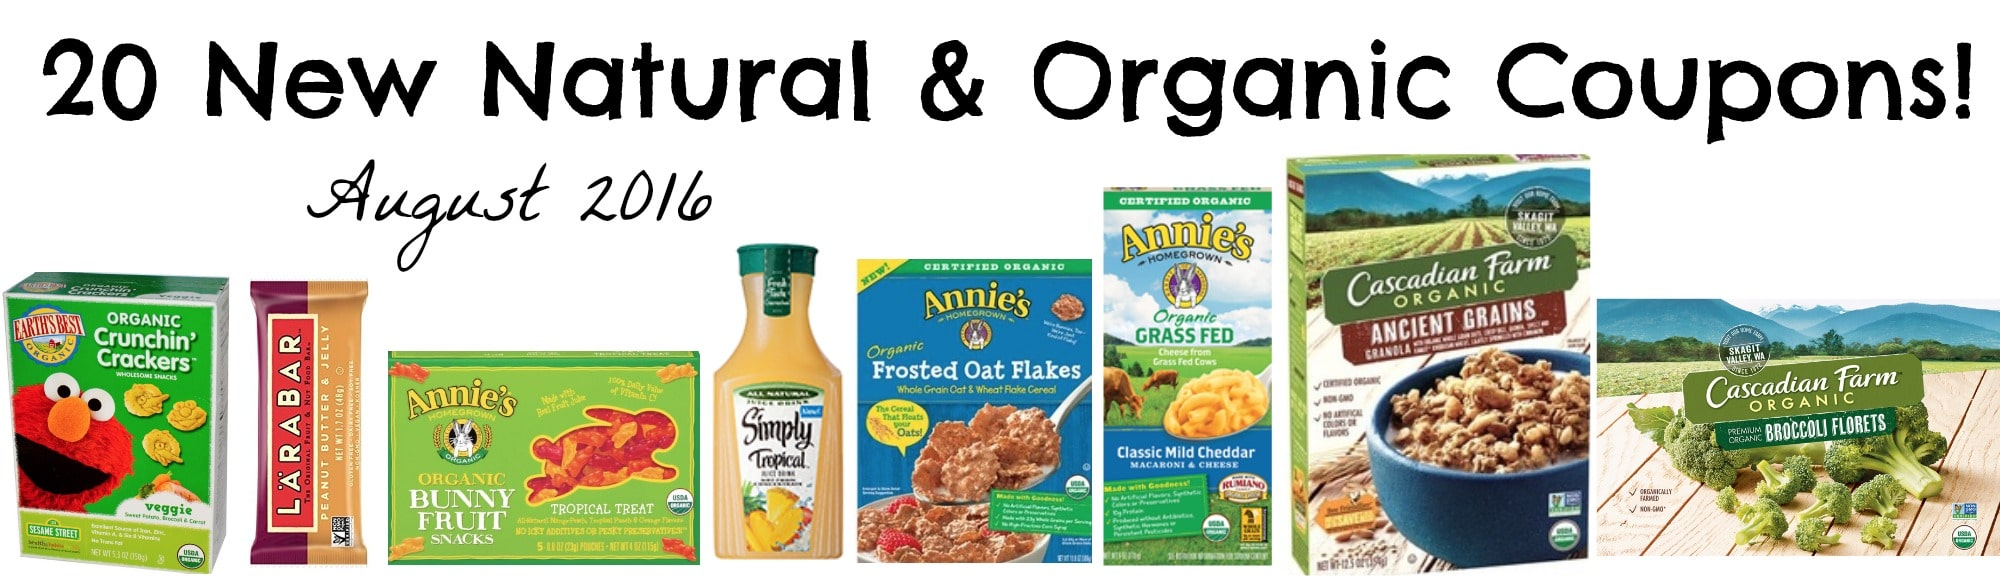 All Natural Savings -Organic and Healthy Coupons Print natural and organic coupons for your favorite healthy products. Daily deals and tips on affordable healthy foods, natural products and living an.